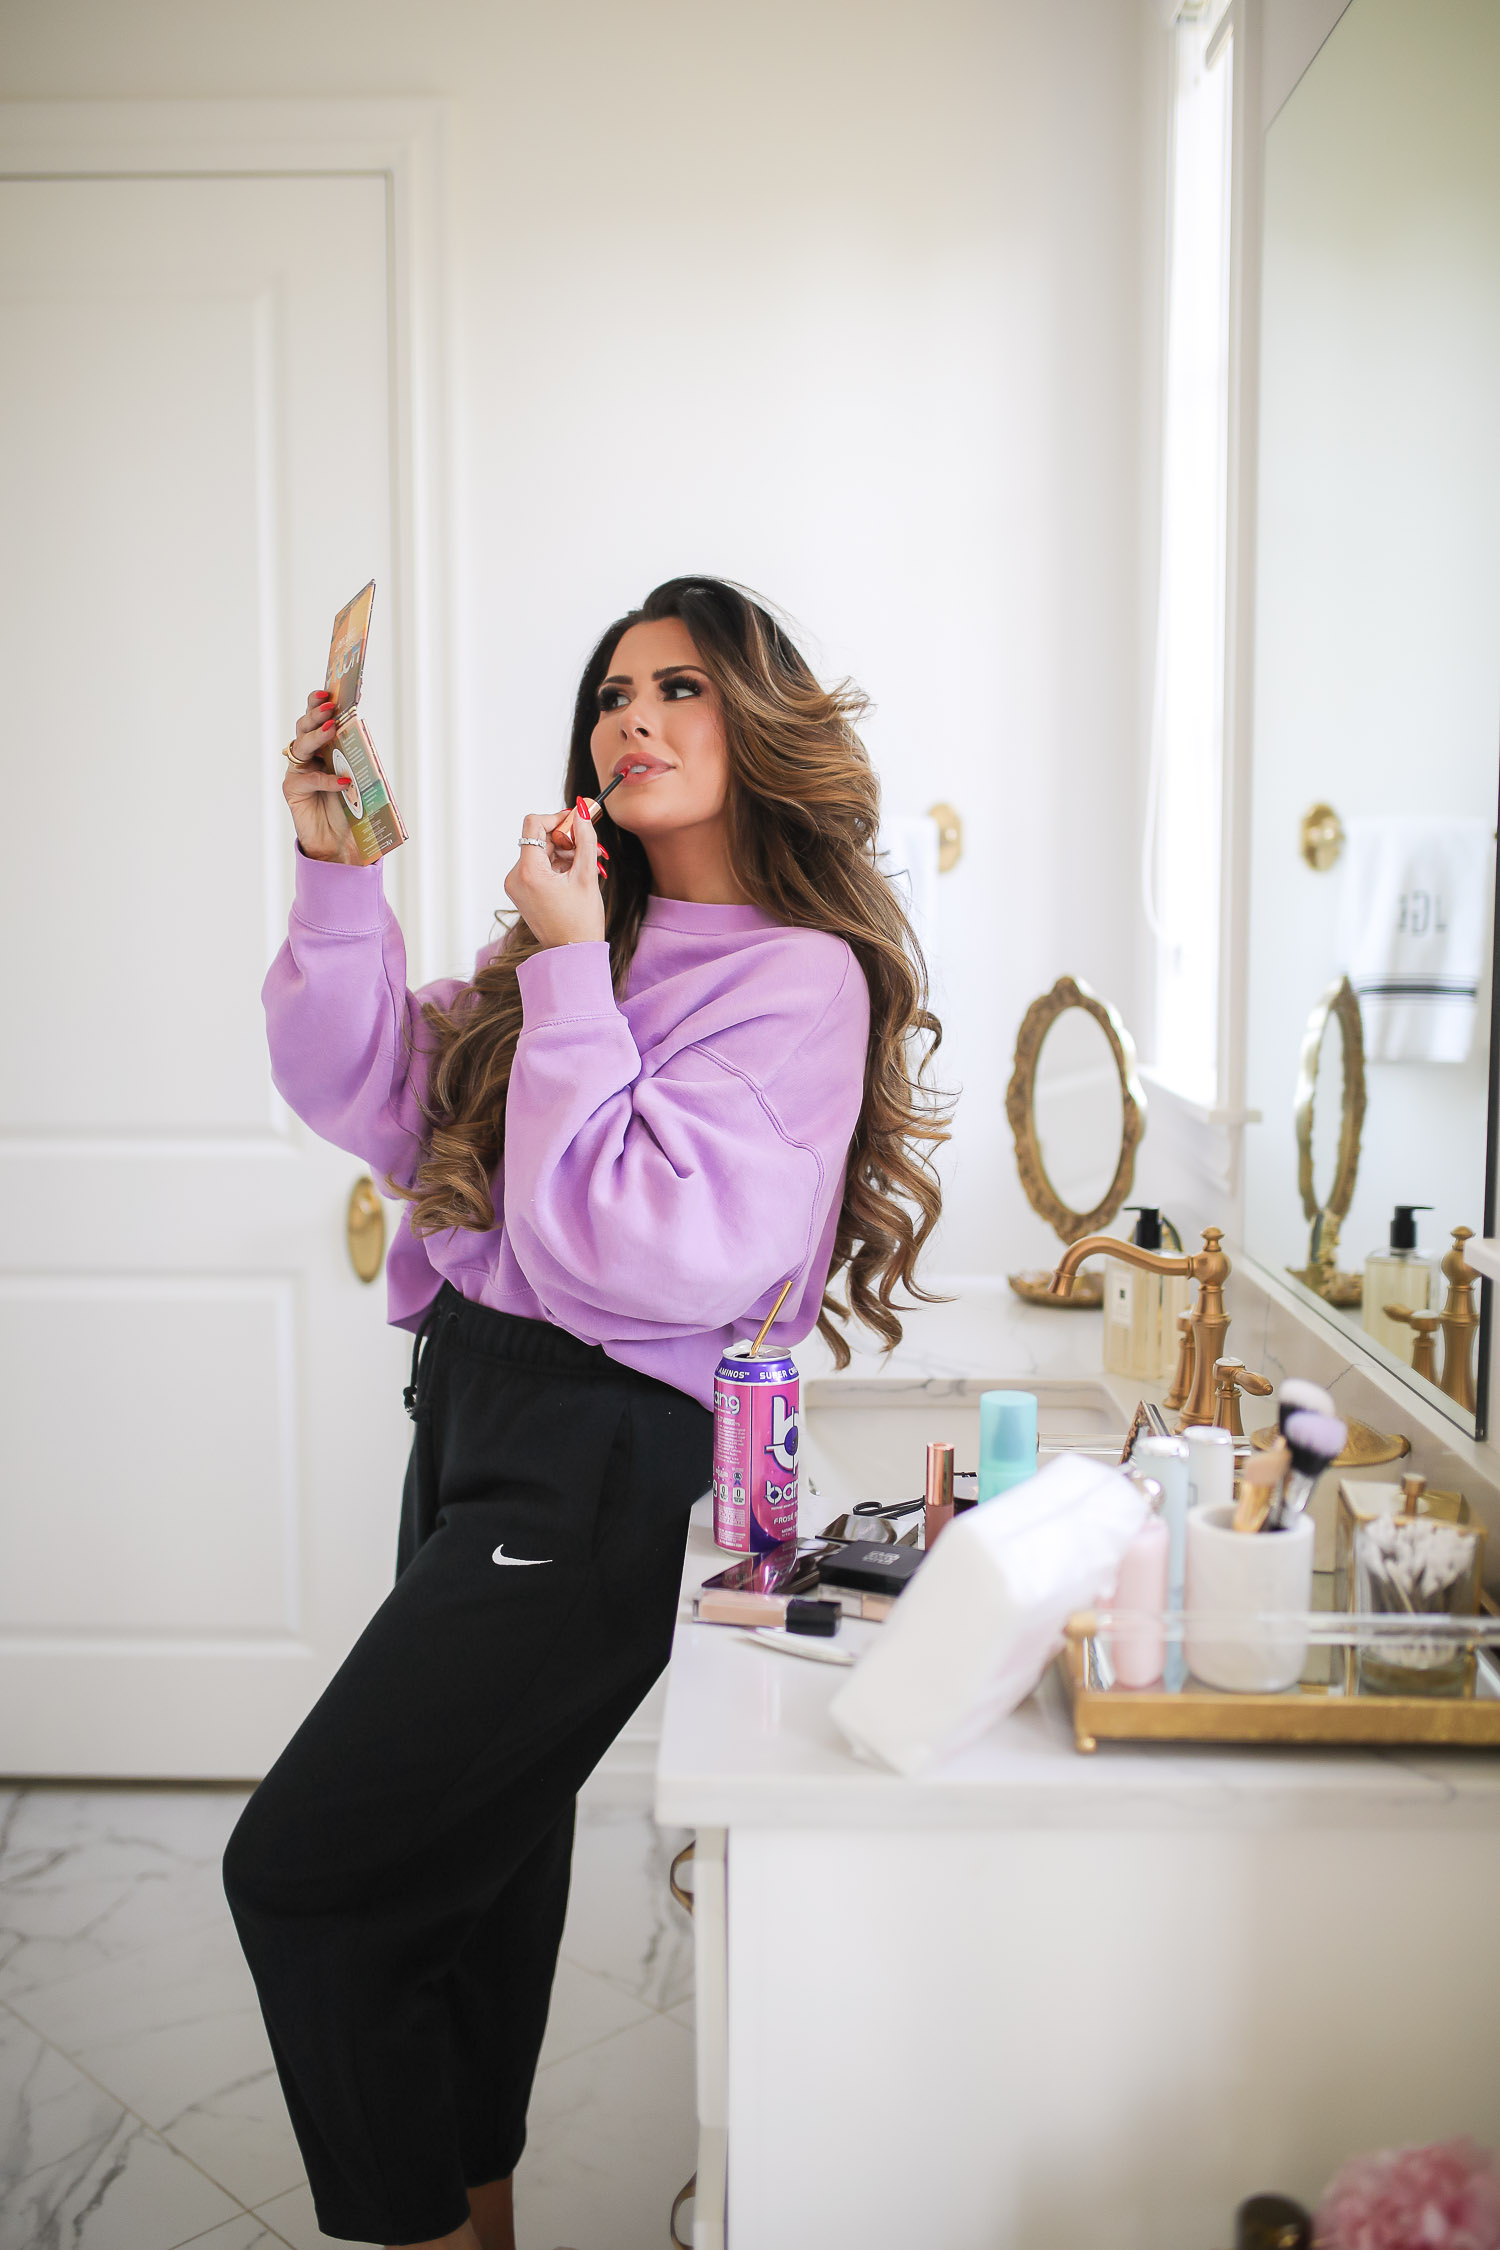 nordstrom beauty must haves fall 2021, sisley pore minimizer review, sisley blur powder review, sisley hyaluronic acid, emily gemma beauty must haves, hoola bronzer palette | Beauty Favorites by popular US beauty blog, The Sweetest Thing: image of Emily Gemma wearing a purple sweatshirt and black Nike jogger pants while leaning against her bathroom vanity and applying lipgloss while she looks in a handheld mirror.